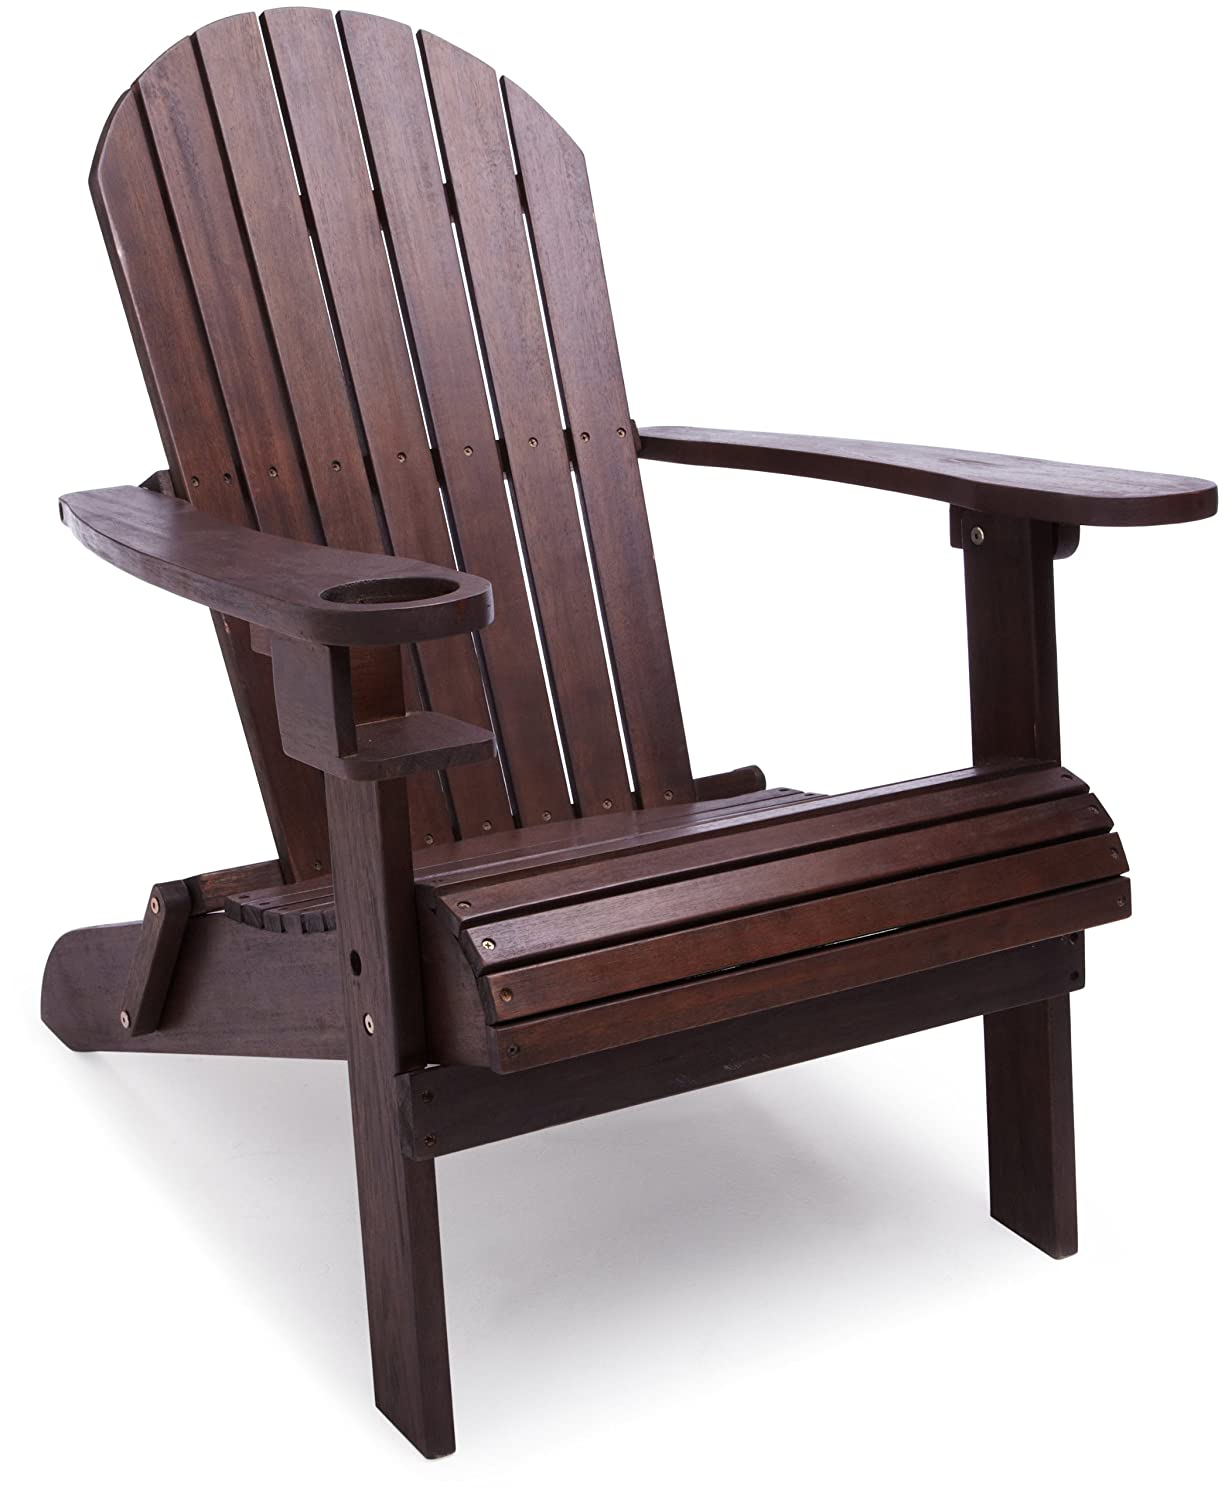 Strathwood Adirondack Chair